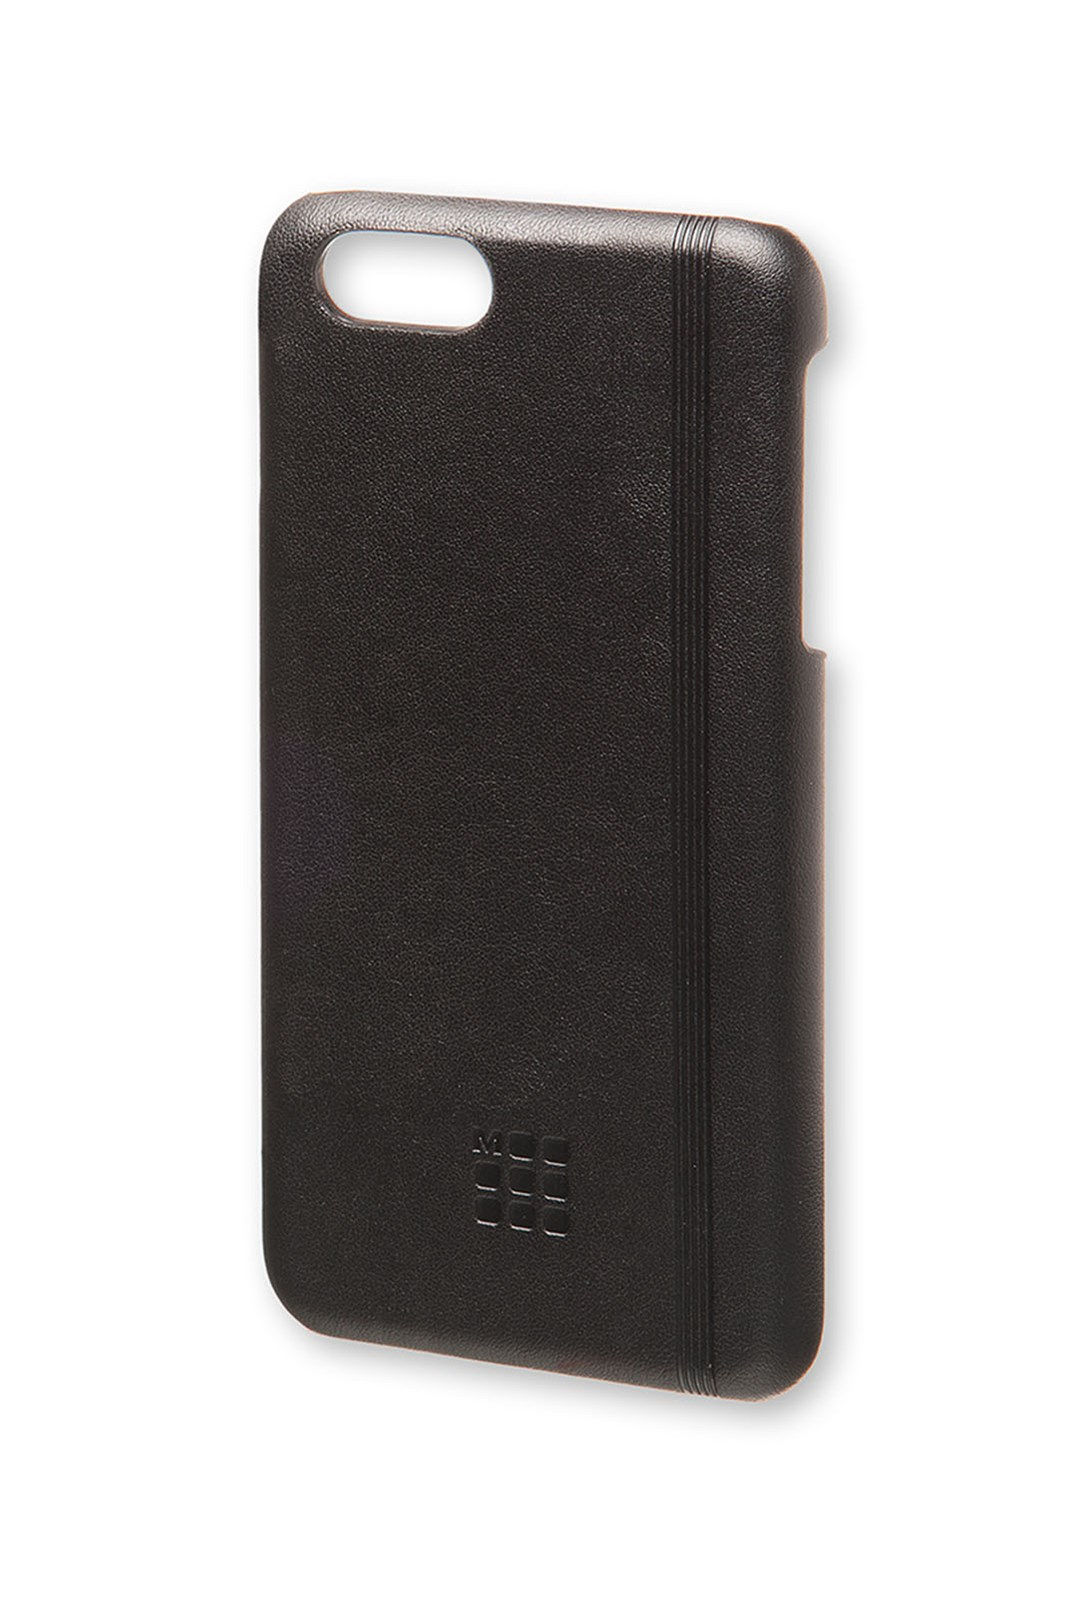 Moleskine - Classic iPhone Hard Case - 6/7/8 - Black